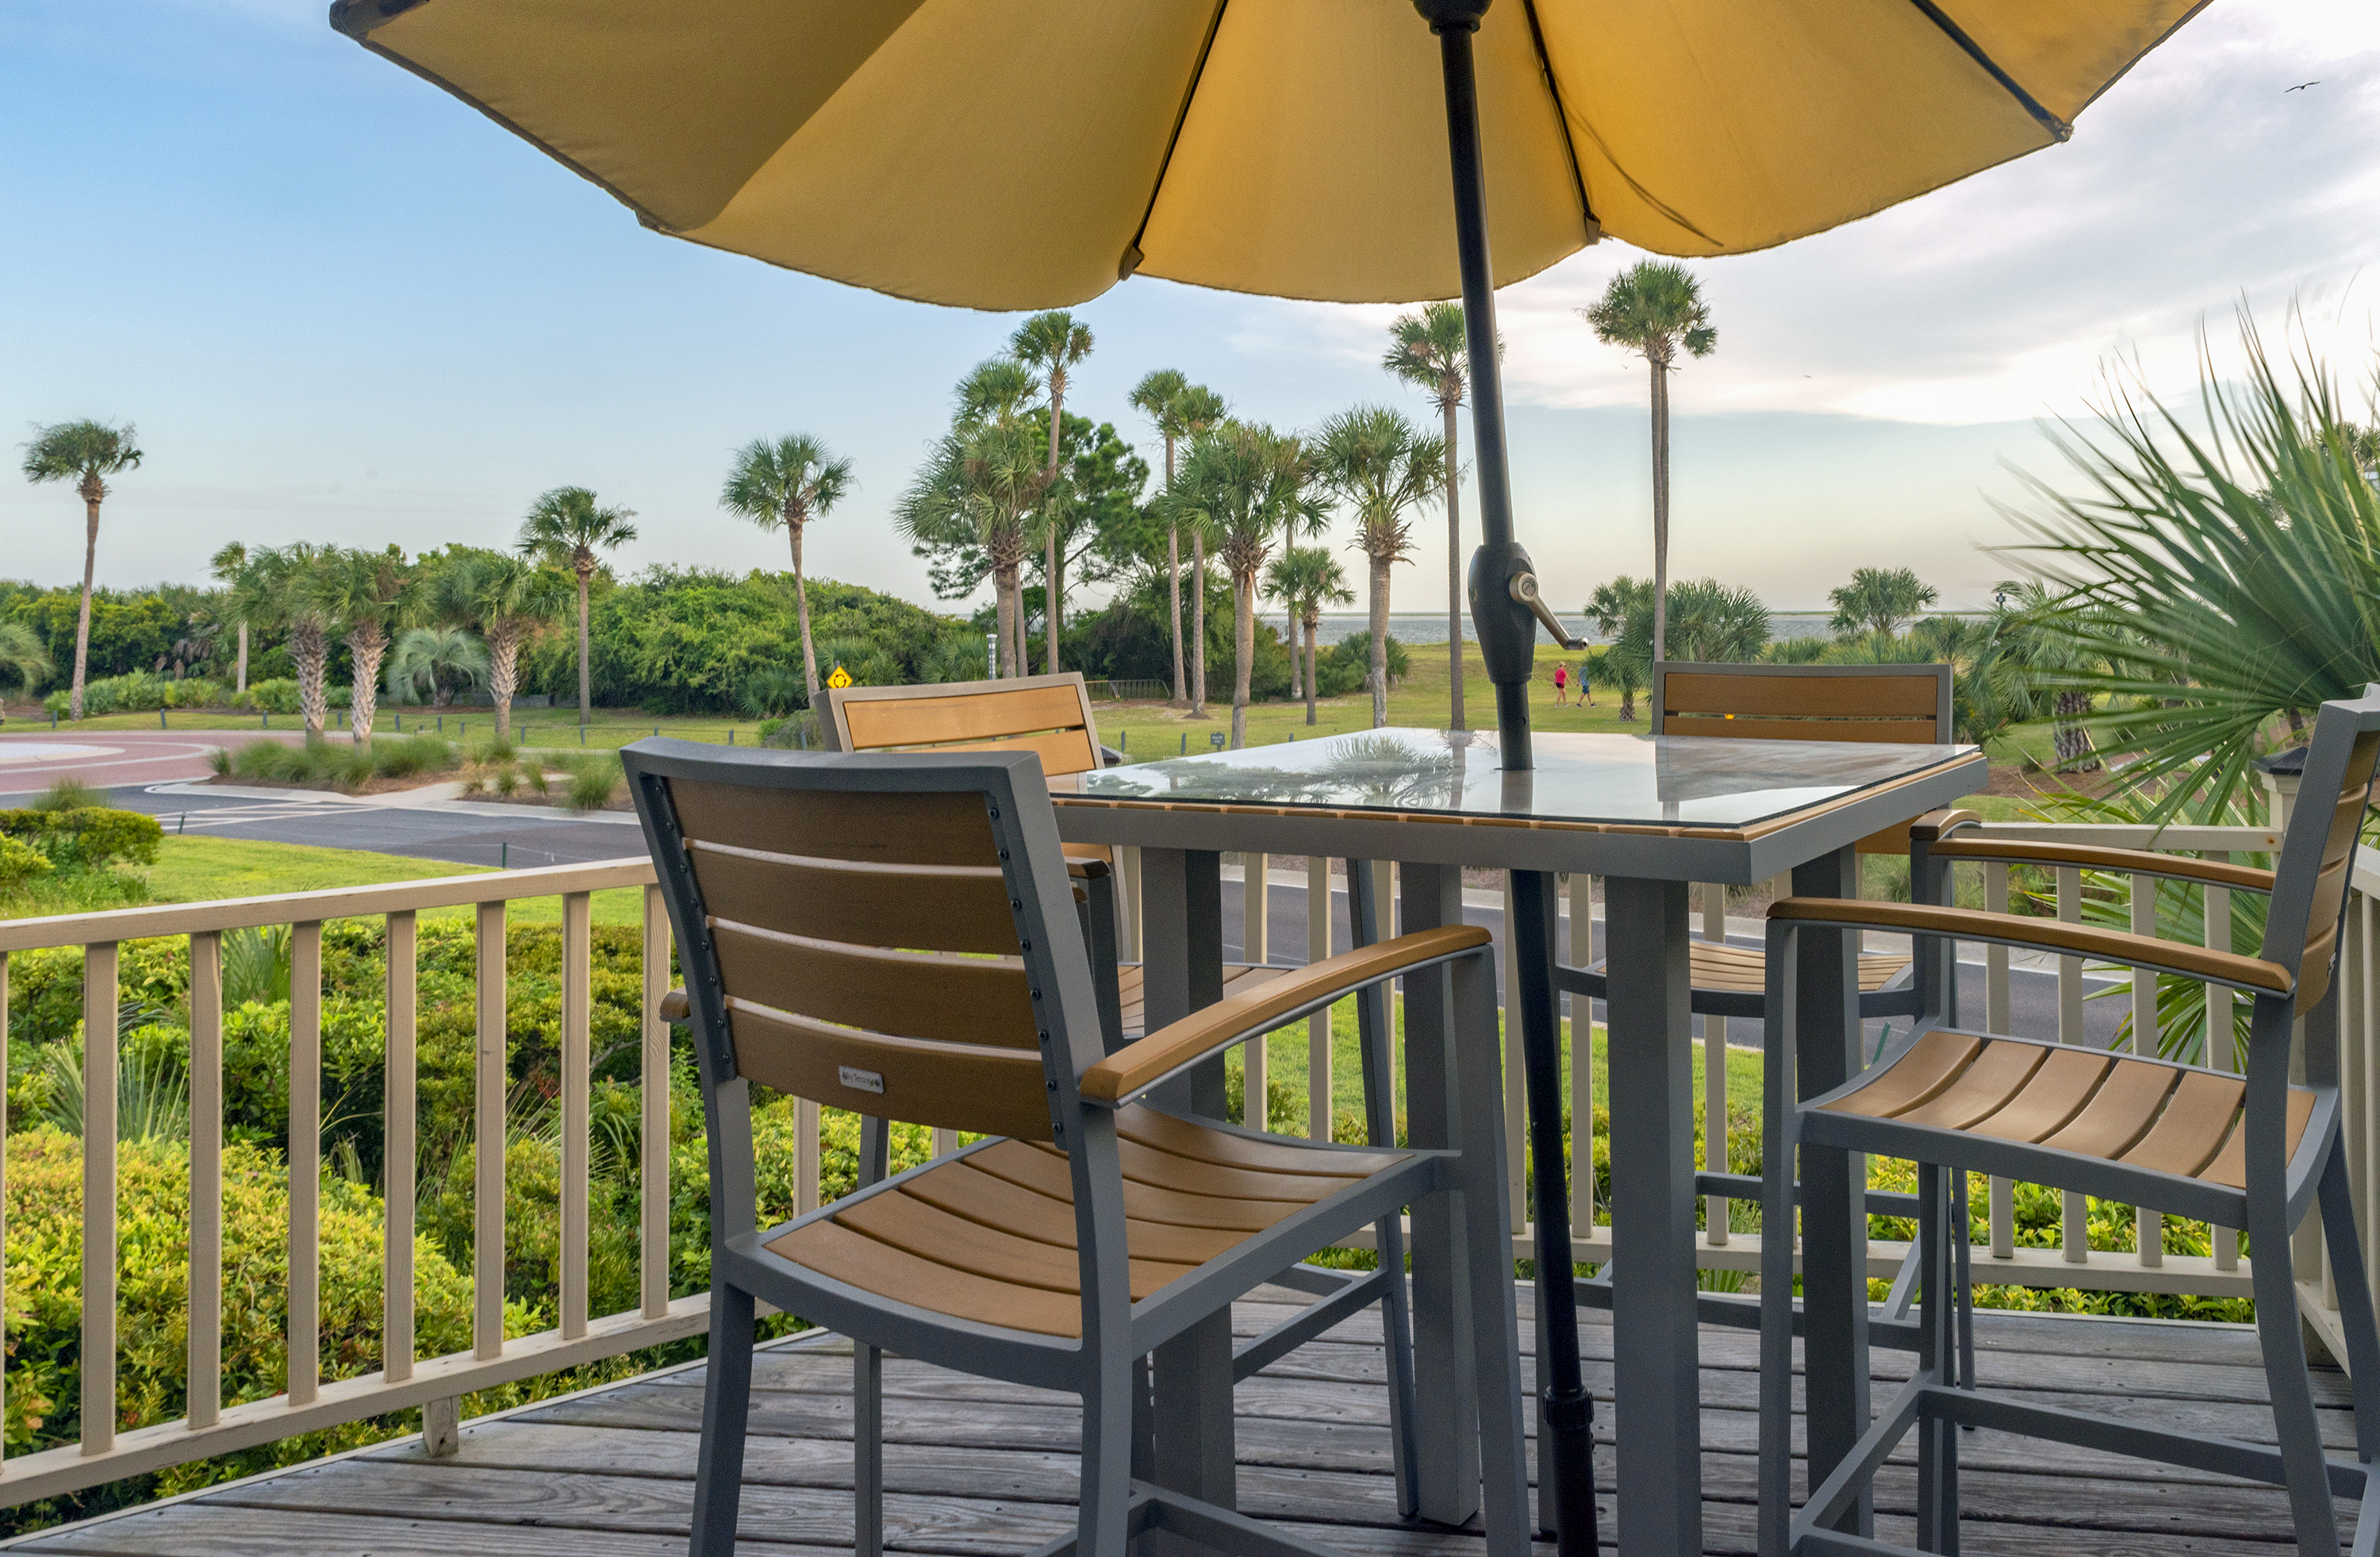 The deck overlooks the ocean, beach, and Deveraux Banks across the waters.